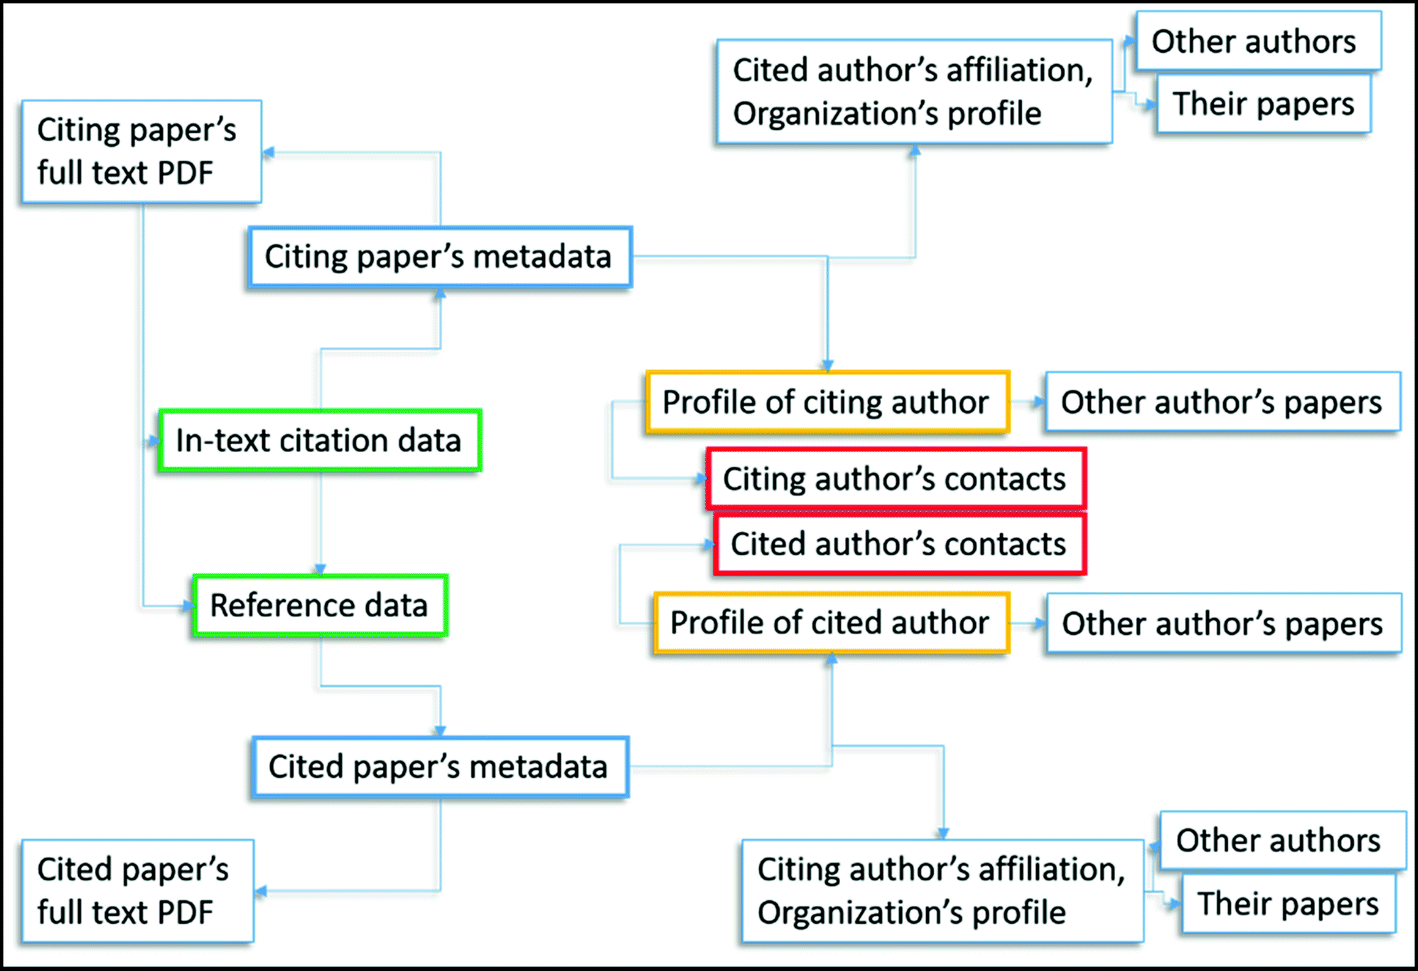 Citation Content Analysis and a Digital Library | SpringerLink